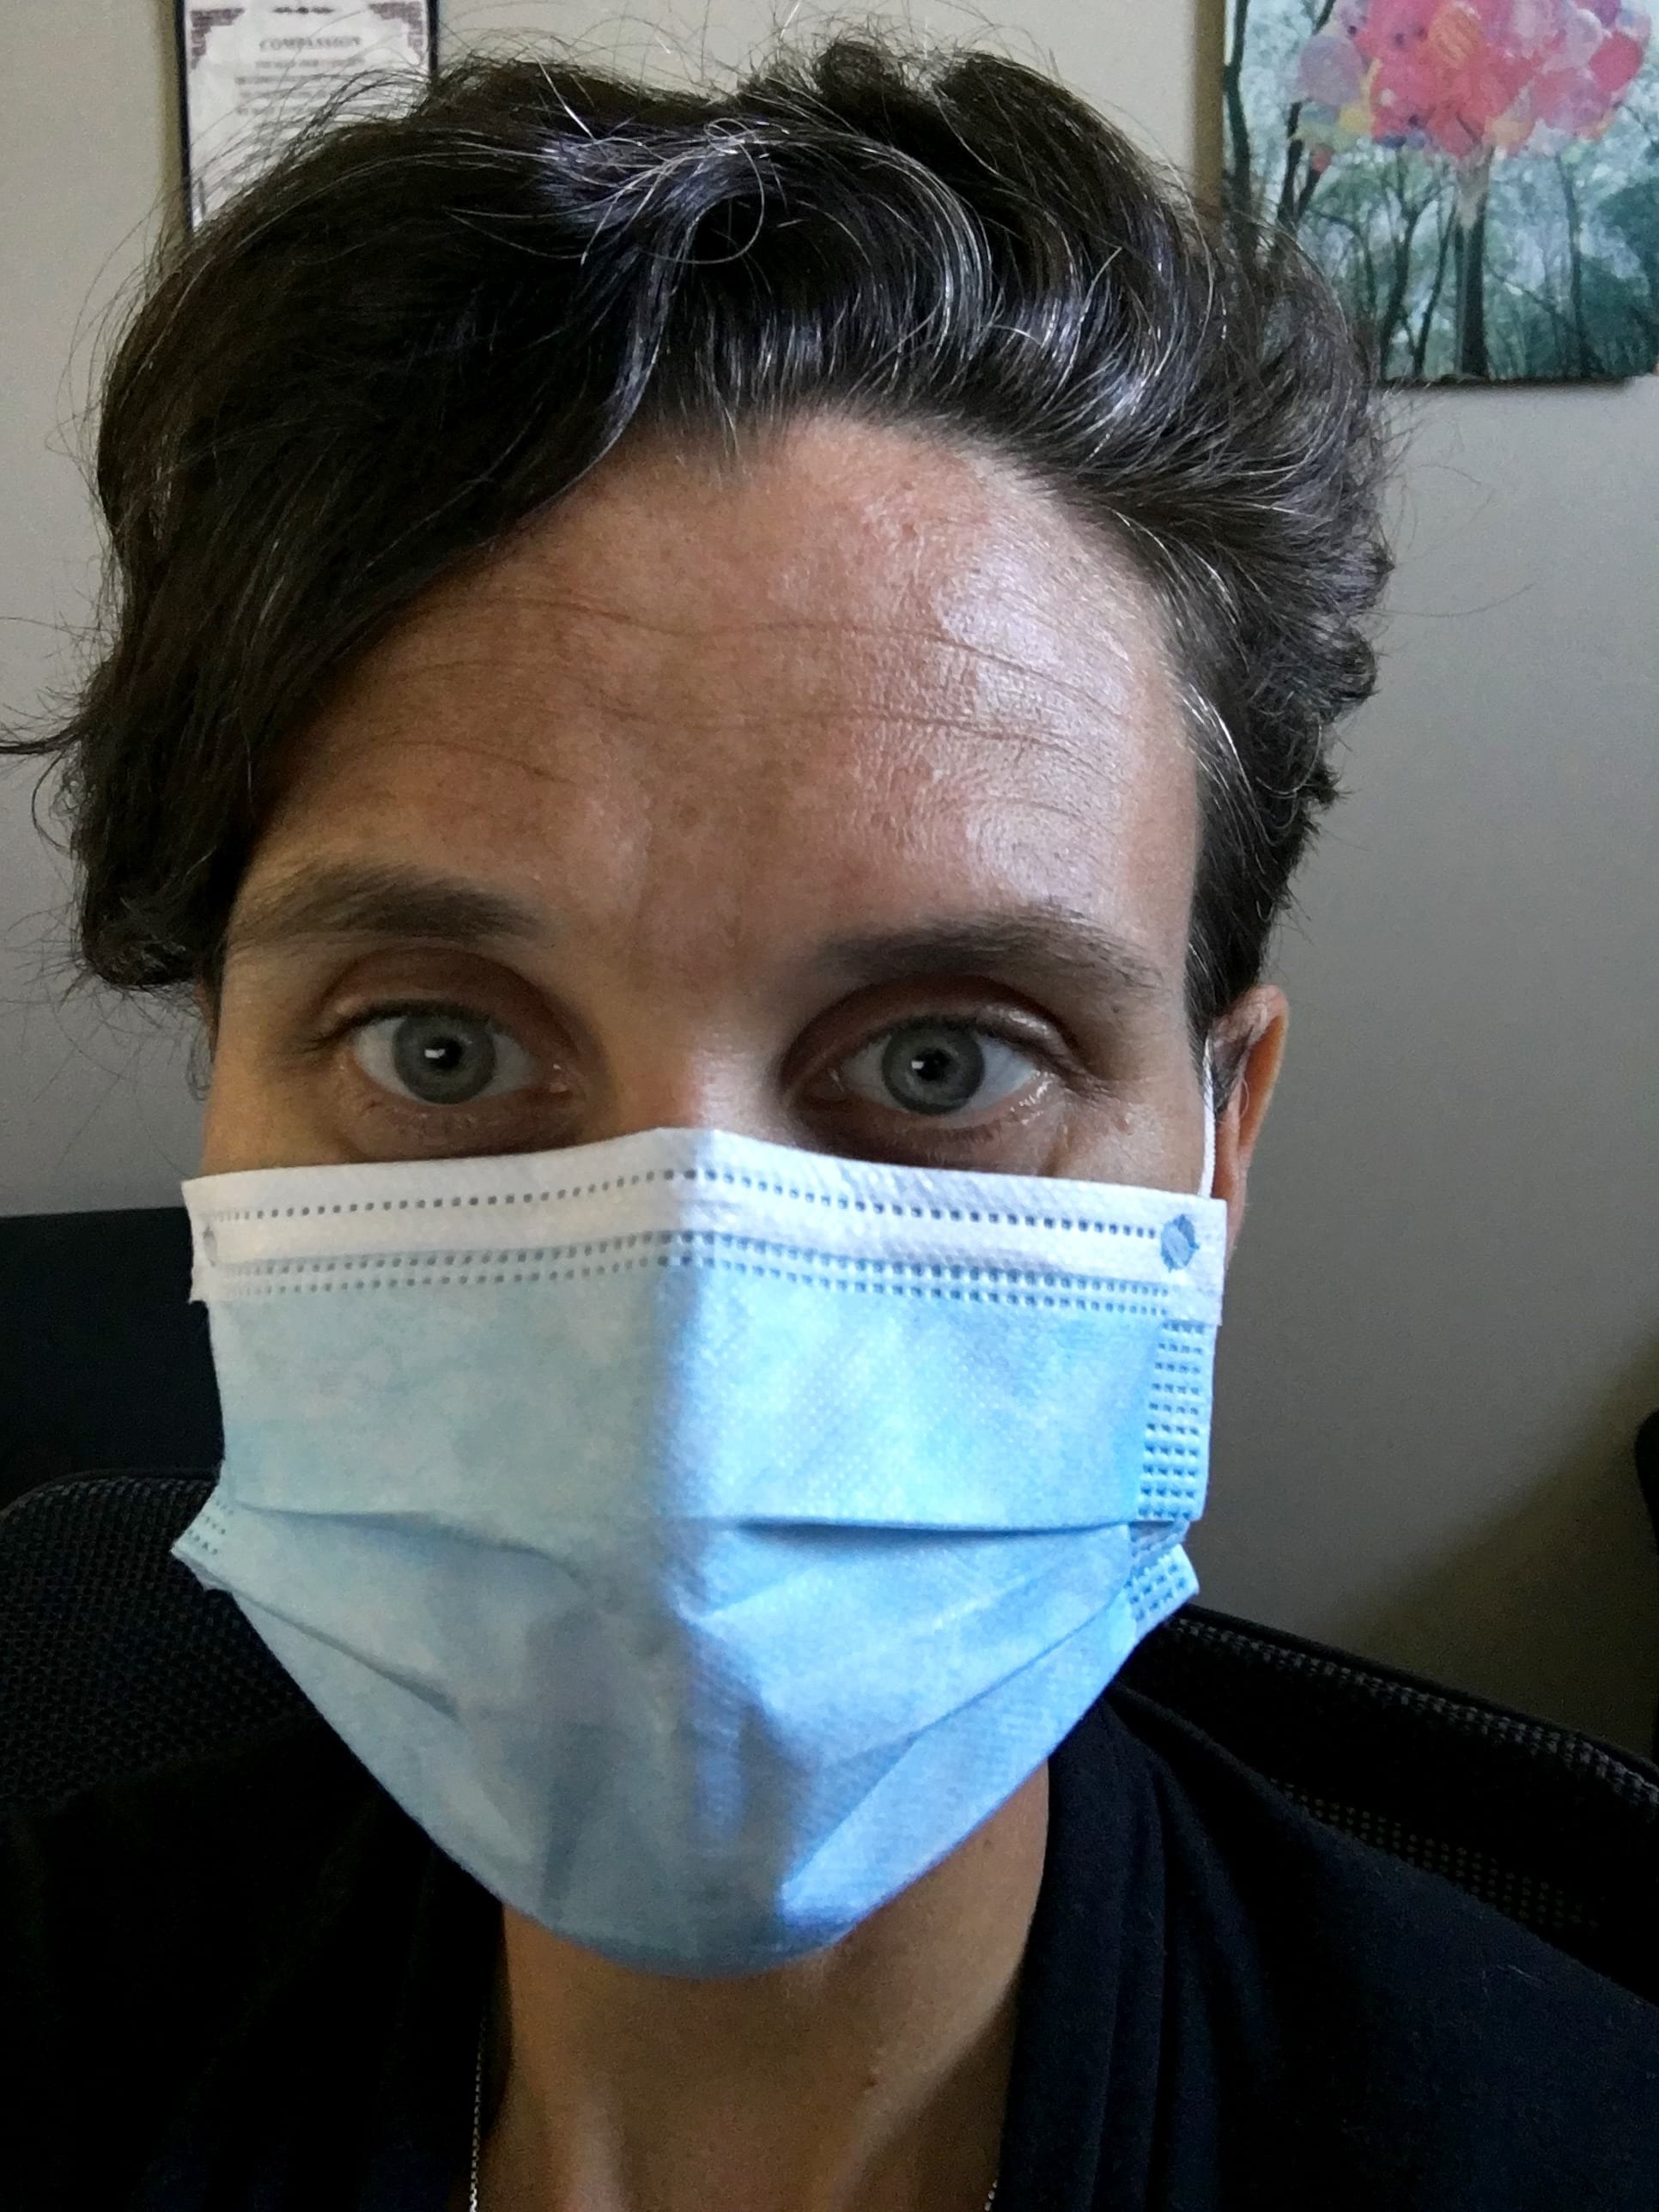 Potts knows the importance of masks during this pandemic.